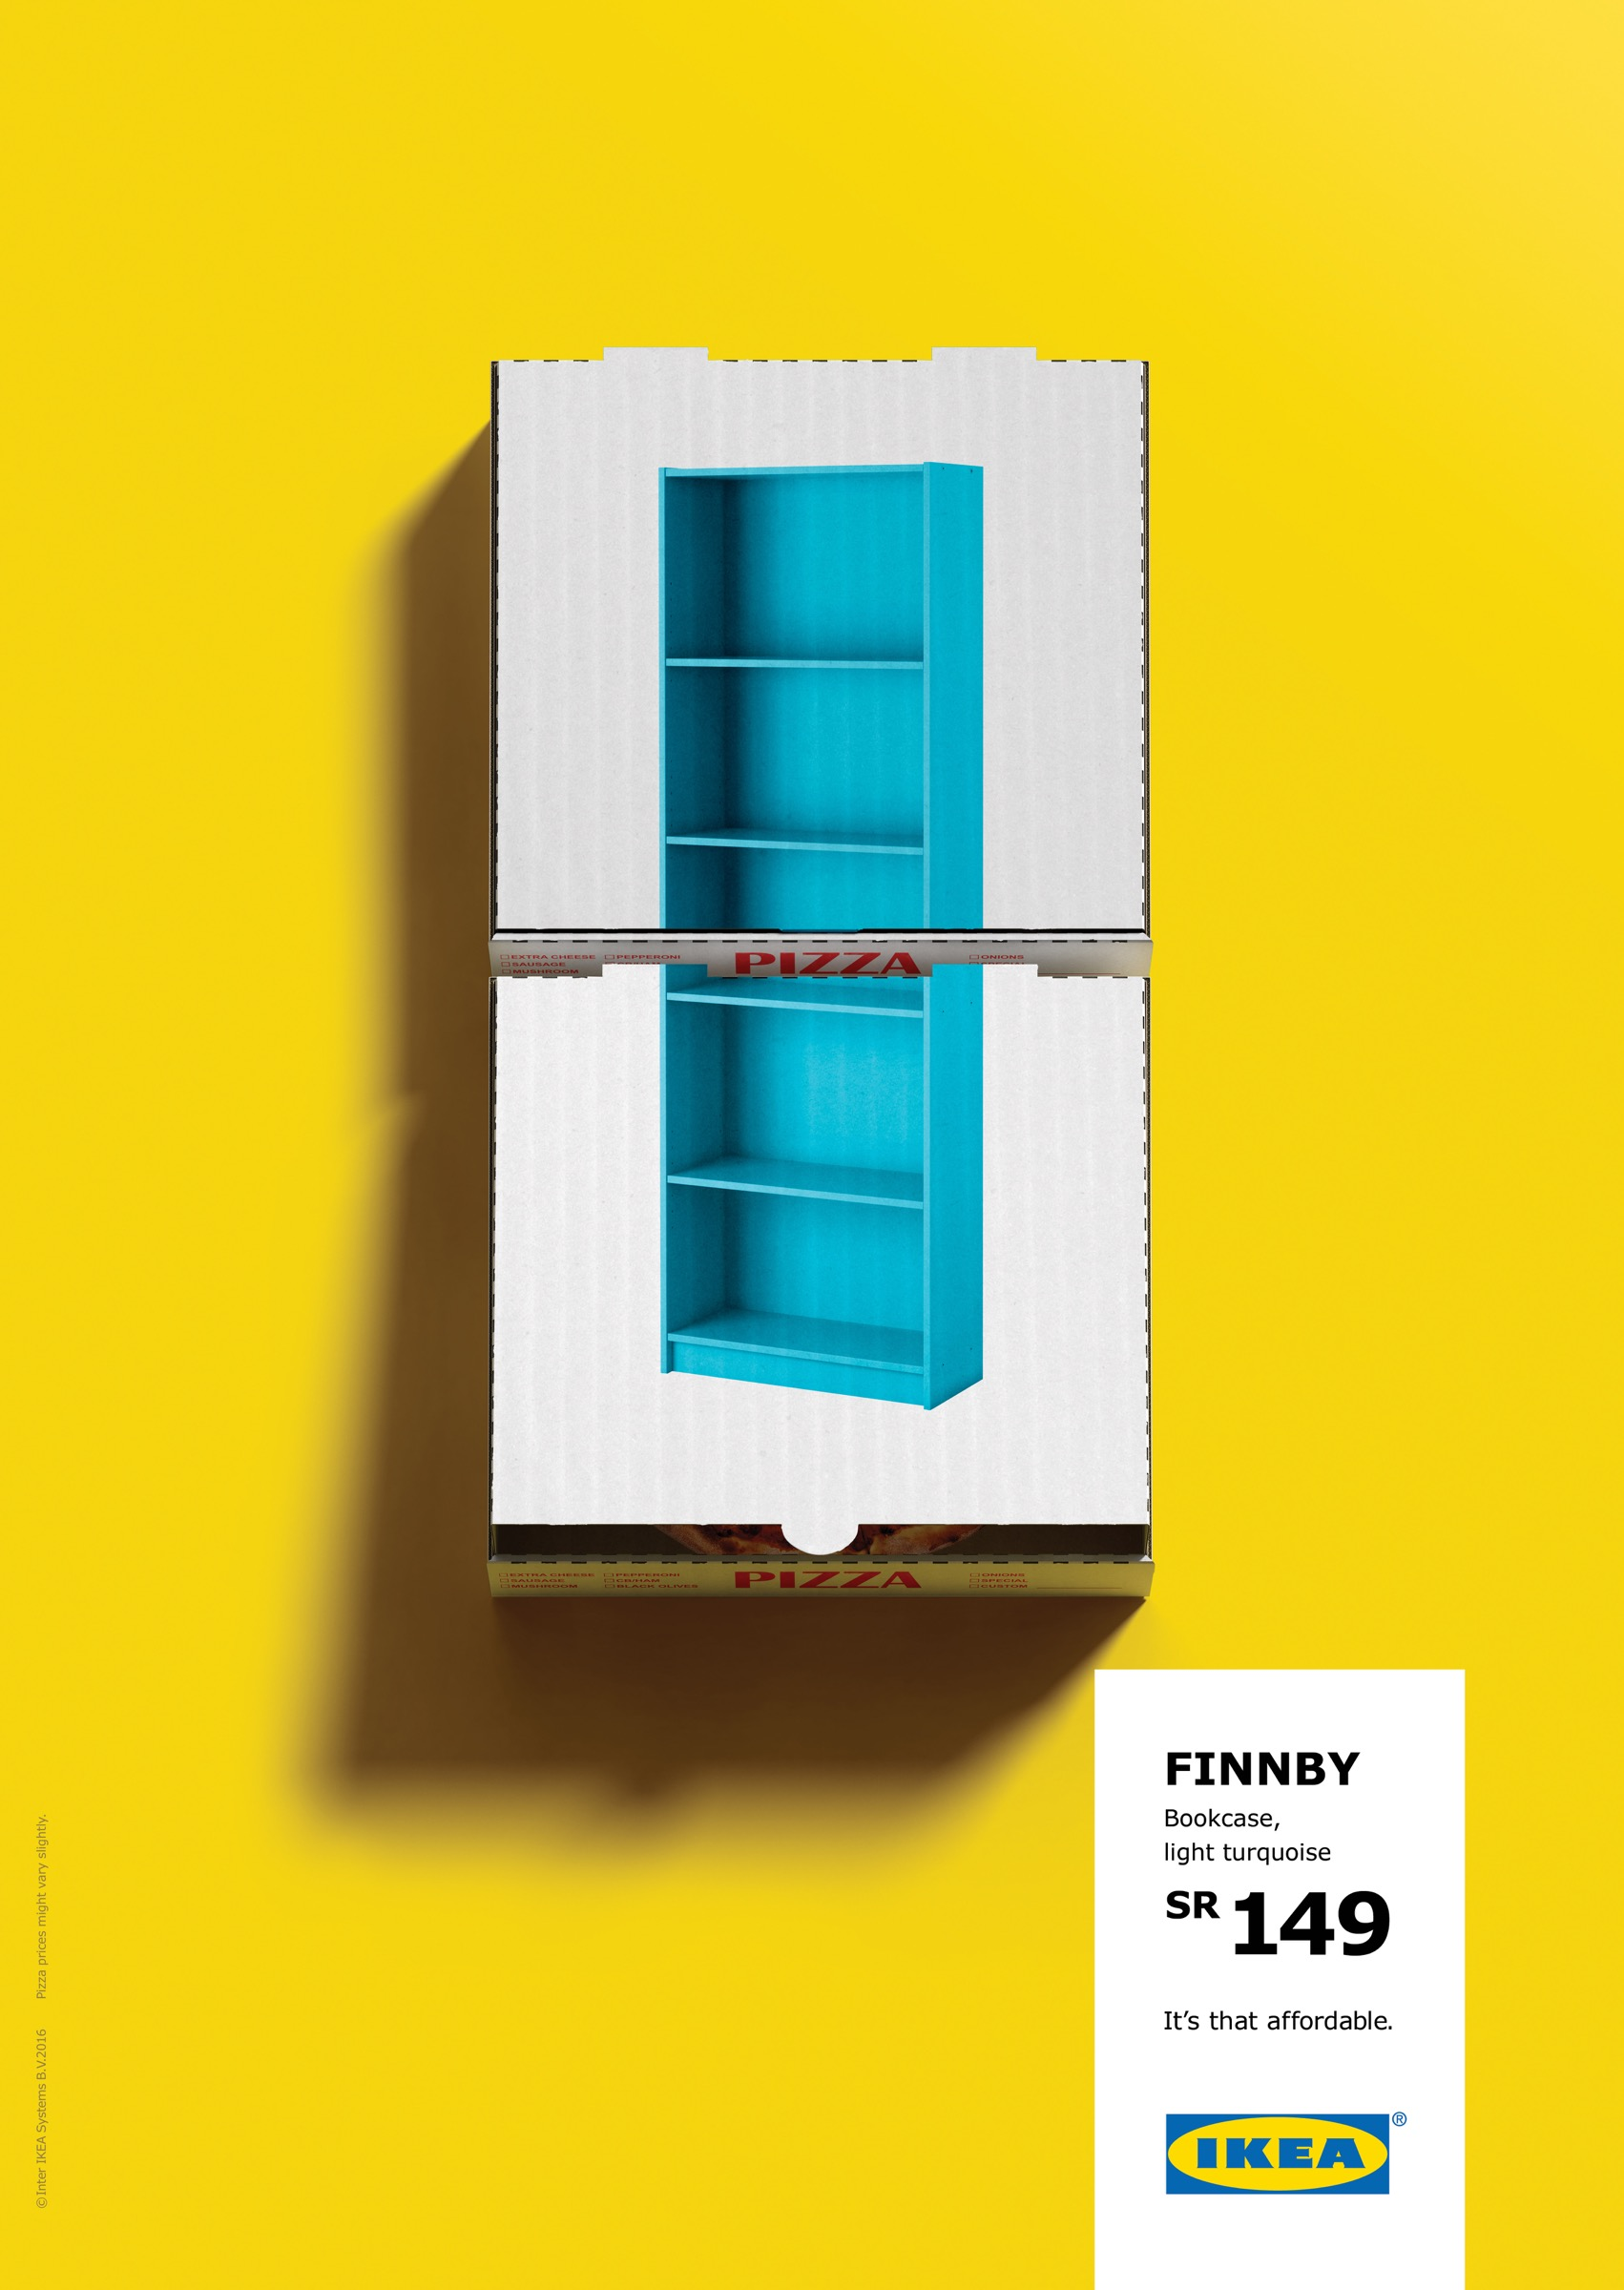 Ikea Uae Ikea Print Advert By Ogilvy: Bookcase | Ads Of The World™